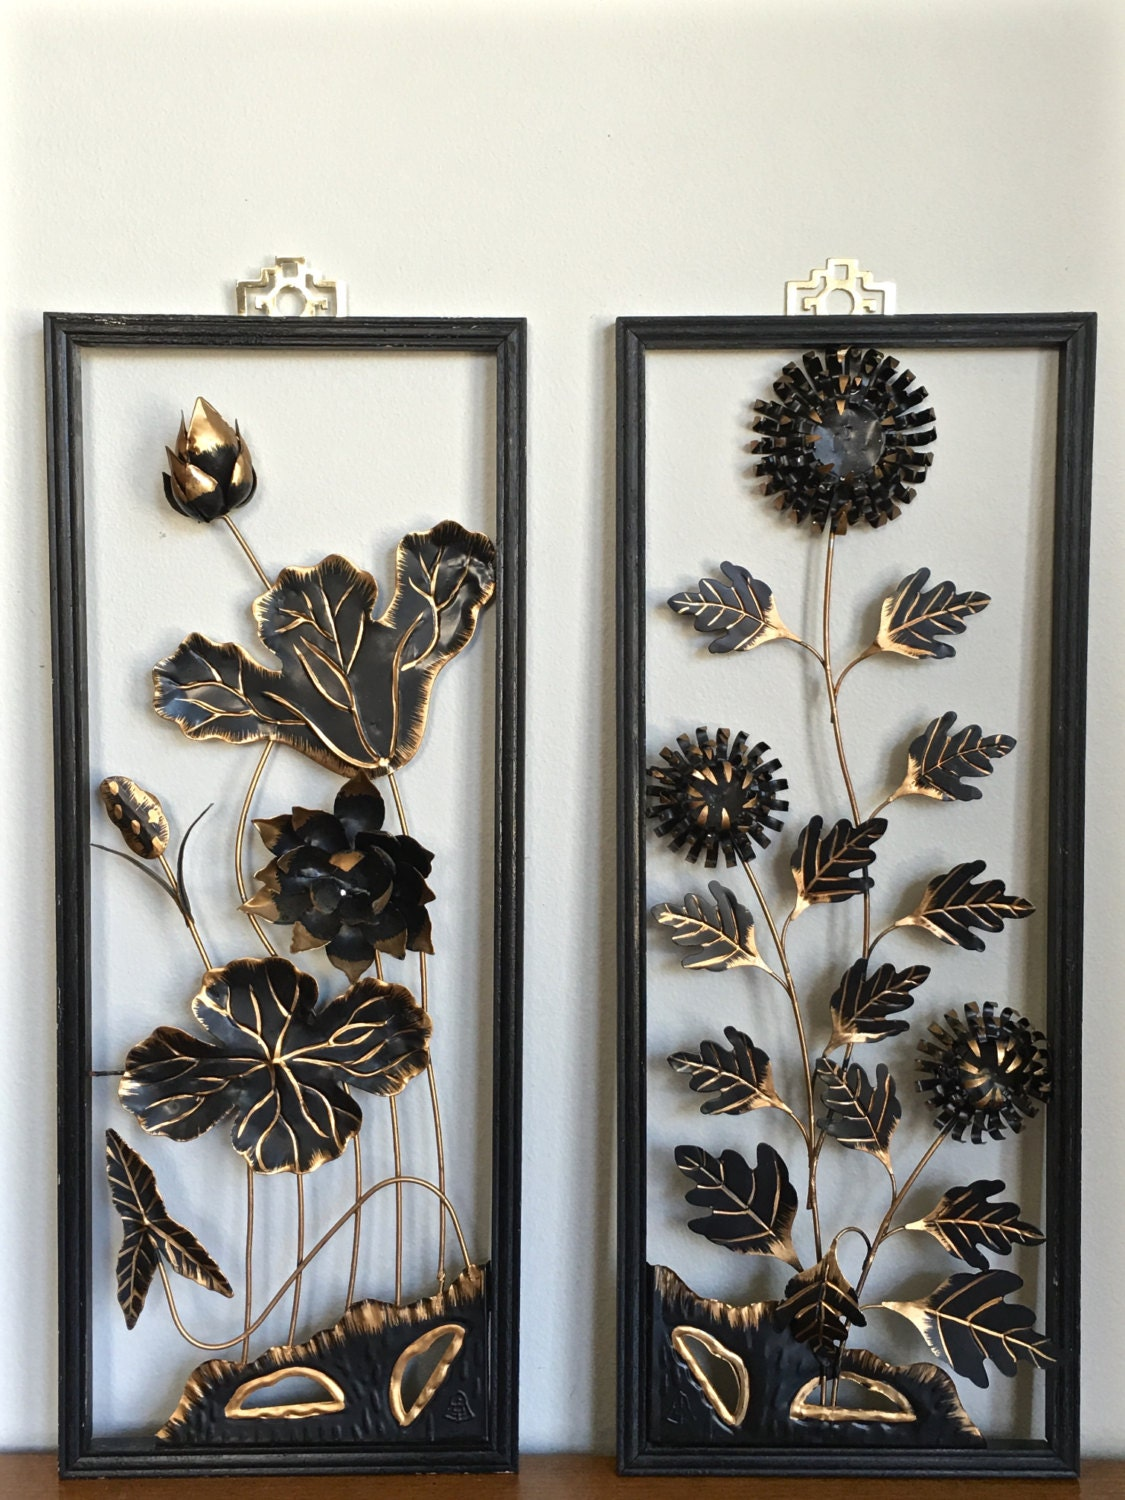 Oriental Metal Wall Decor : Mid century asian metal wall art panels gold black floral pair